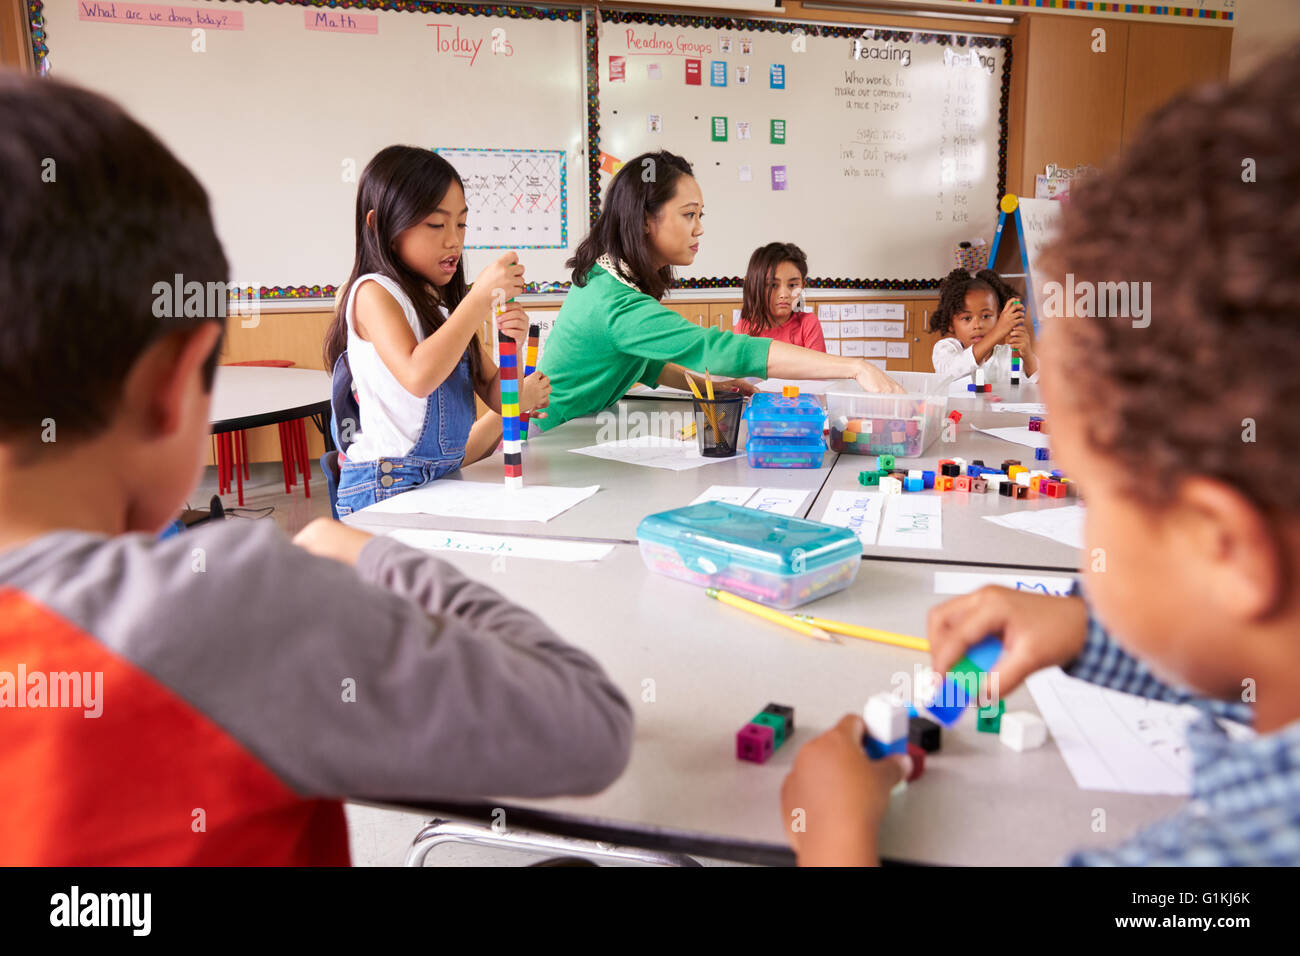 Elementary school teacher uses block play in class with kids - Stock Image